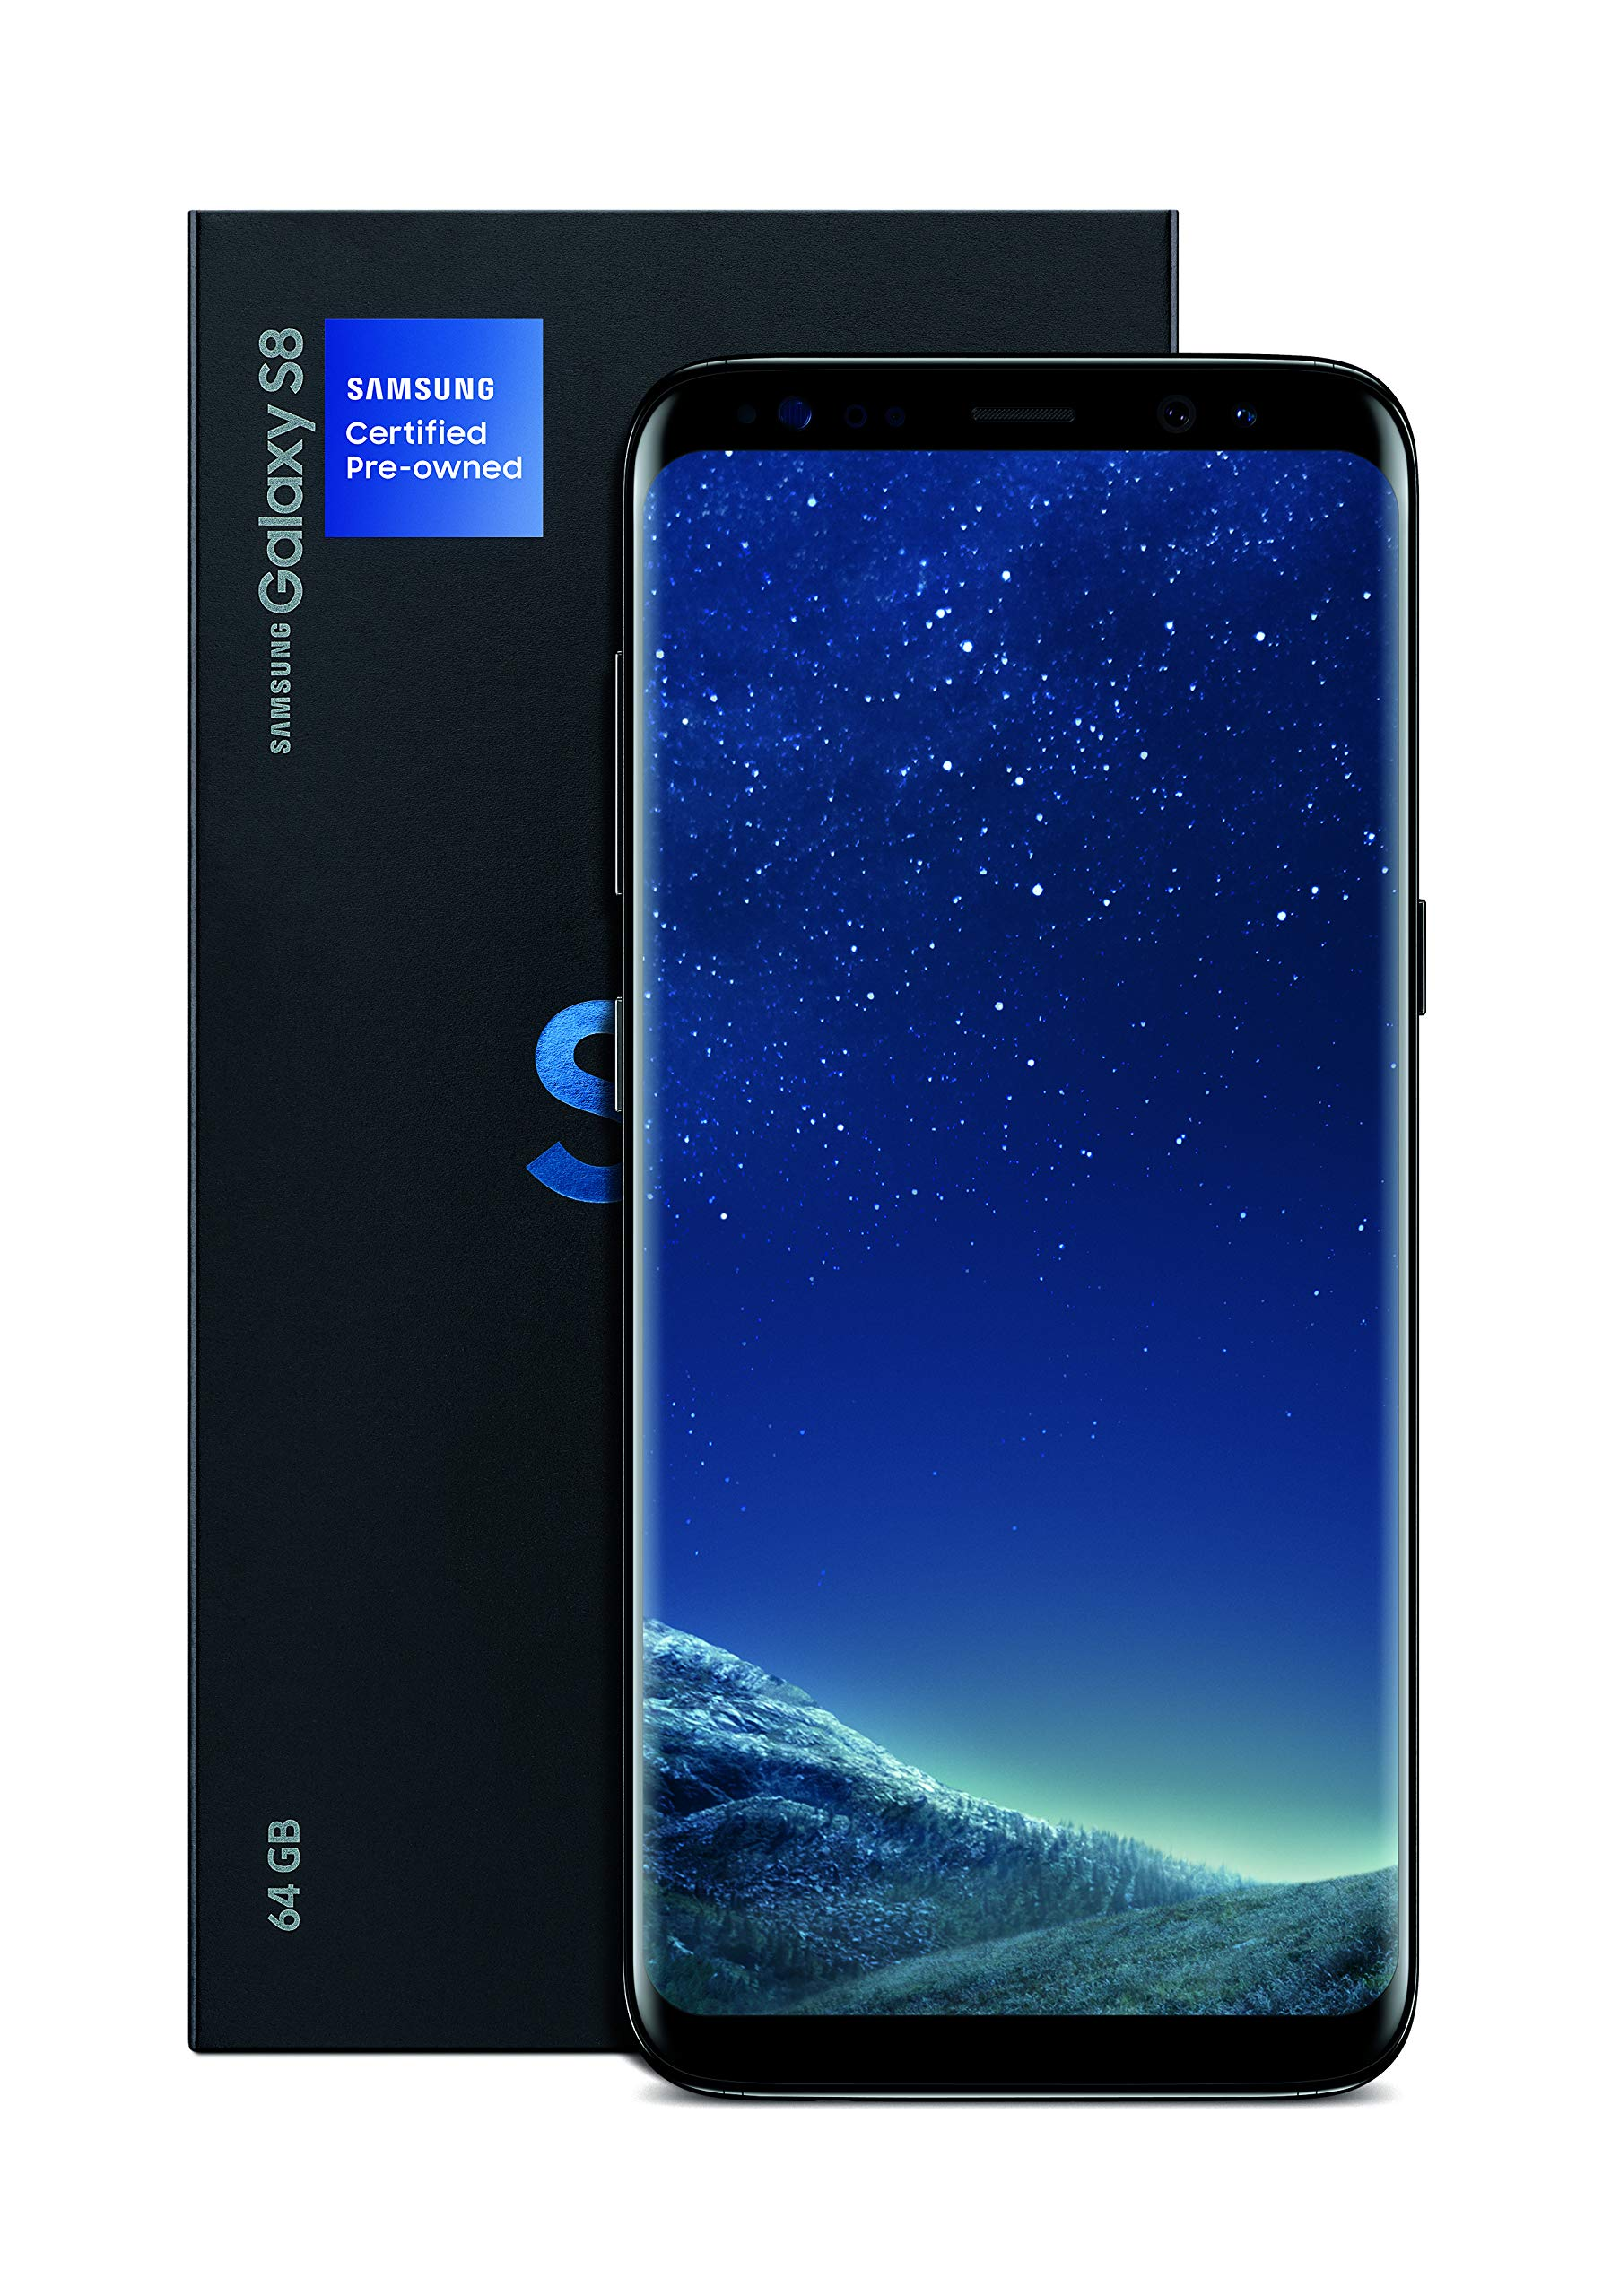 Samsung Galaxy S8 Certified Pre-Owned Factory Unlocked Phone - 5.8Inch Screen - 64GB - Midnight Black (U.S. Warranty) by Samsung